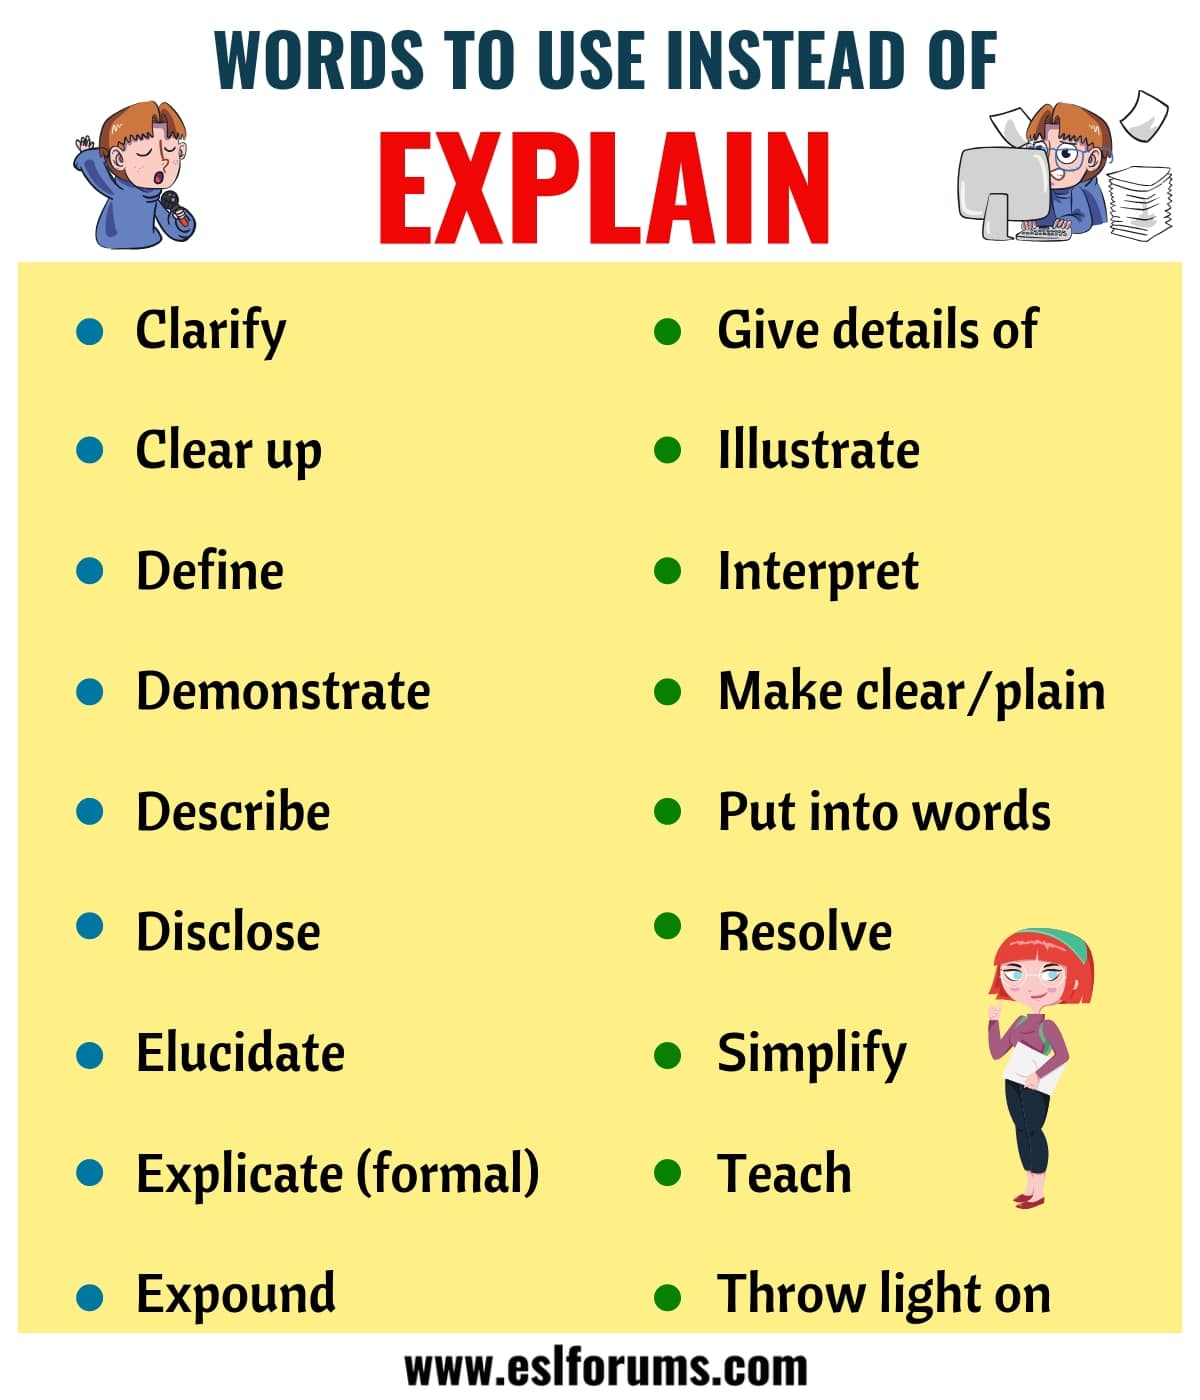 EXPLAIN Synonym: List of 18 Synonyms for Explain with Useful Examples